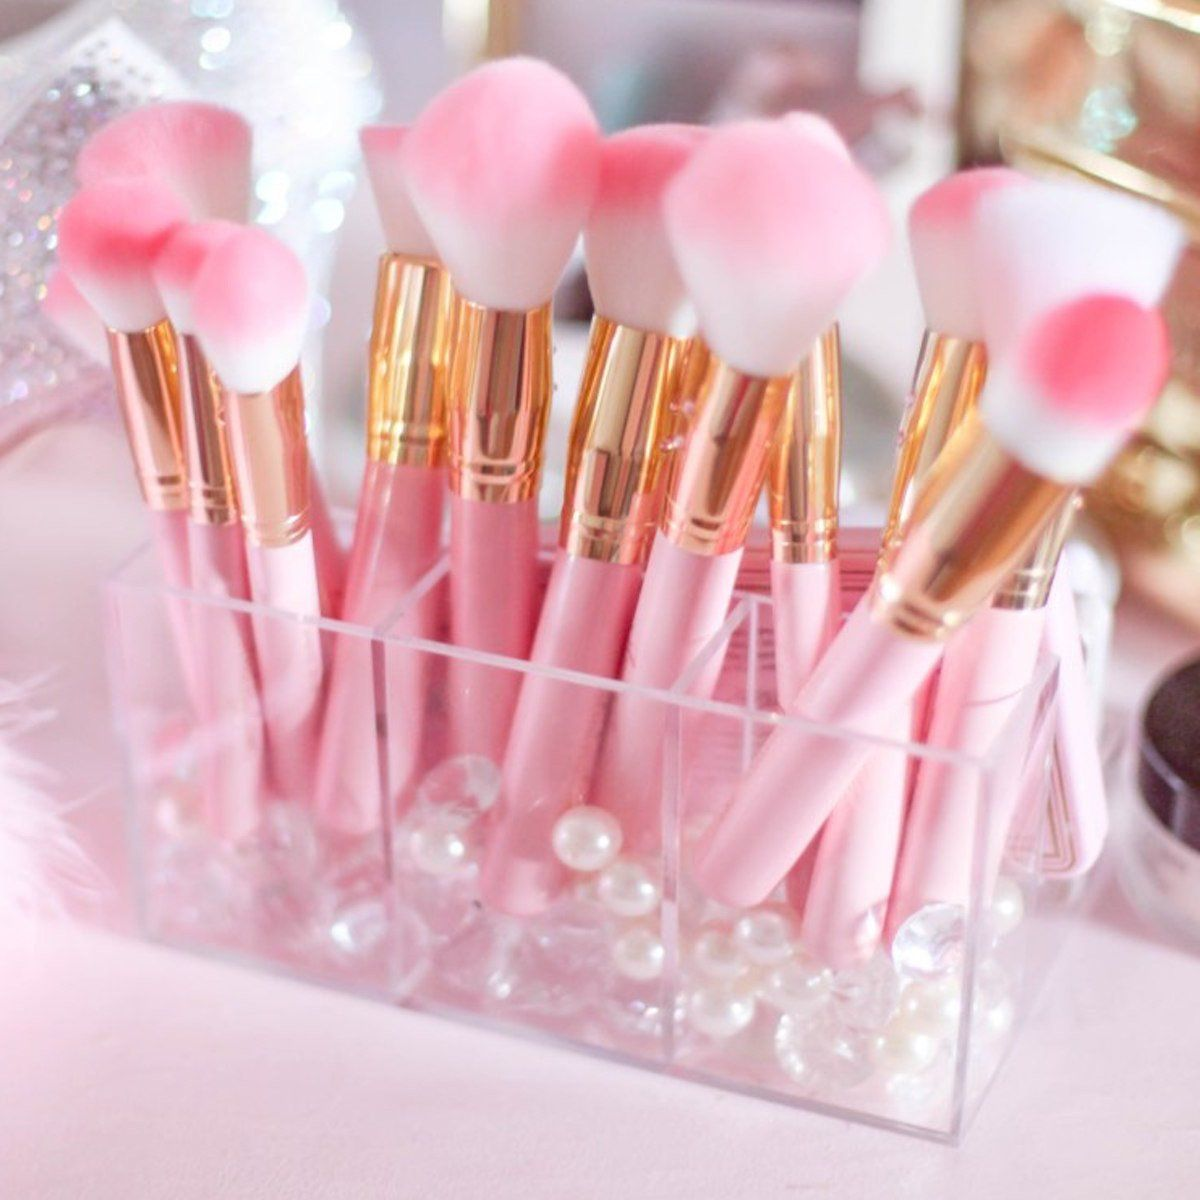 Lipgloss holder | makeup and accesory storage ideas ...